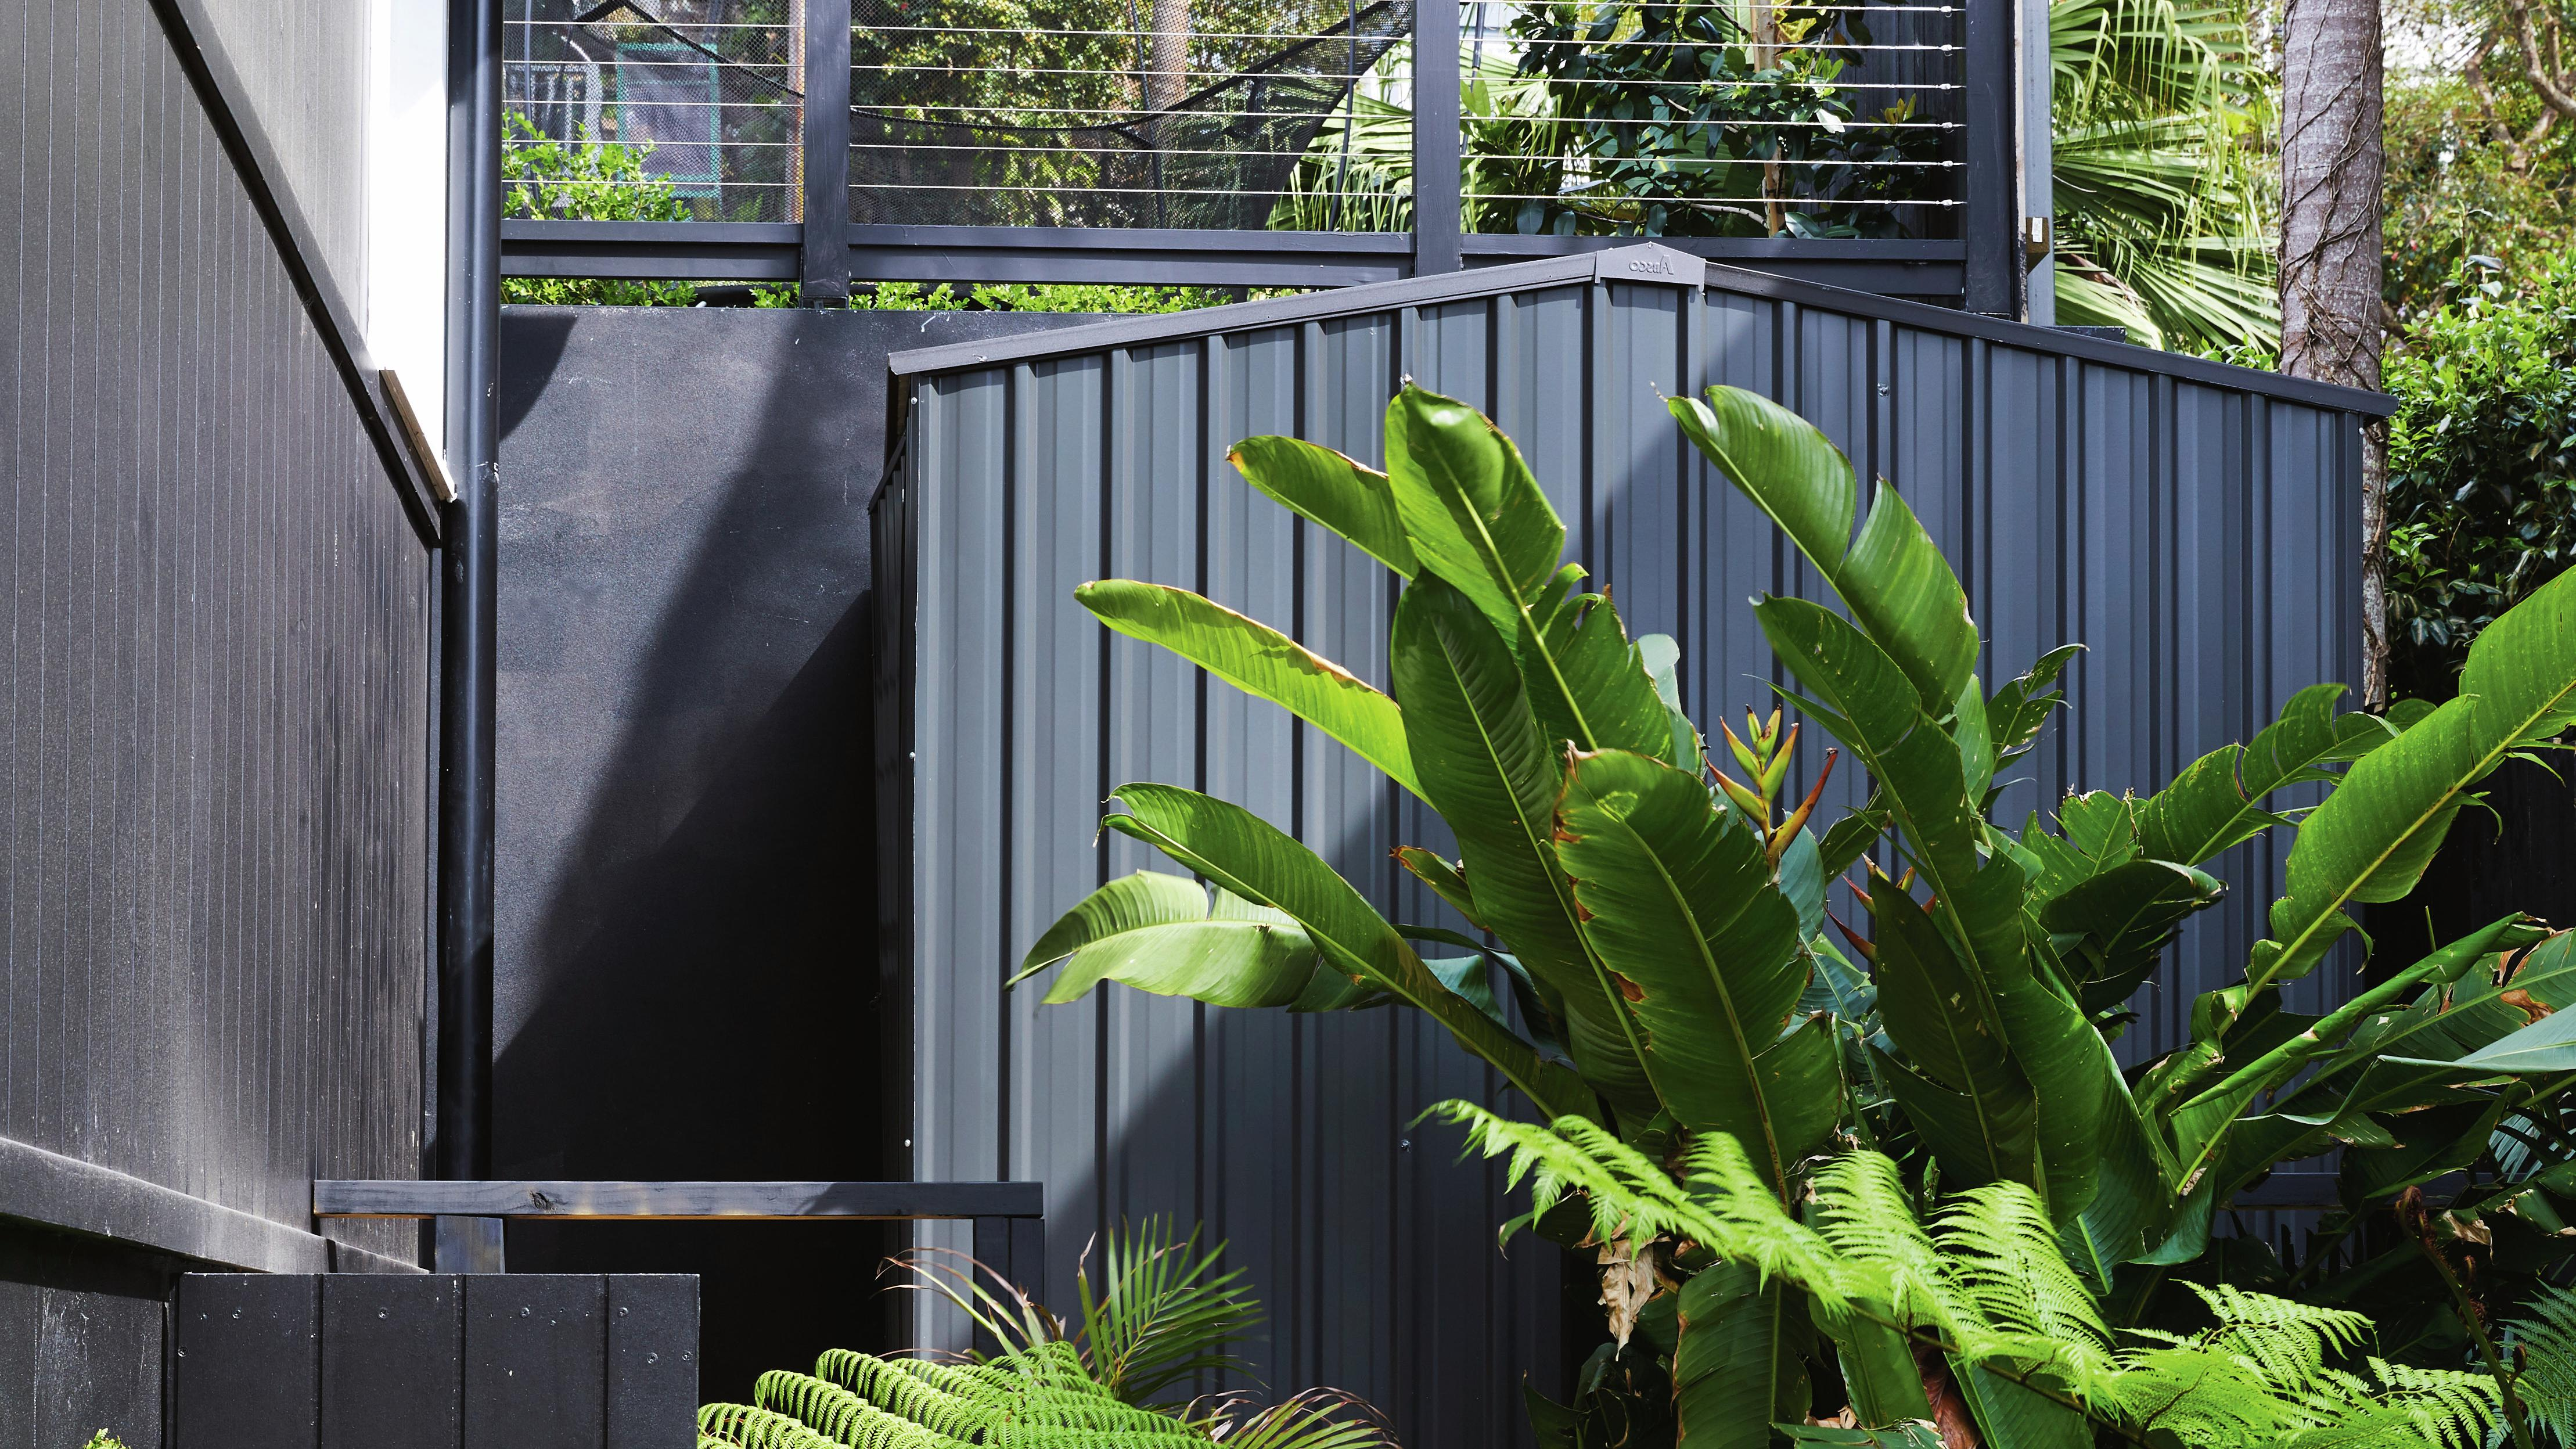 Dark shed blending in with surrounding fence and plants in front.